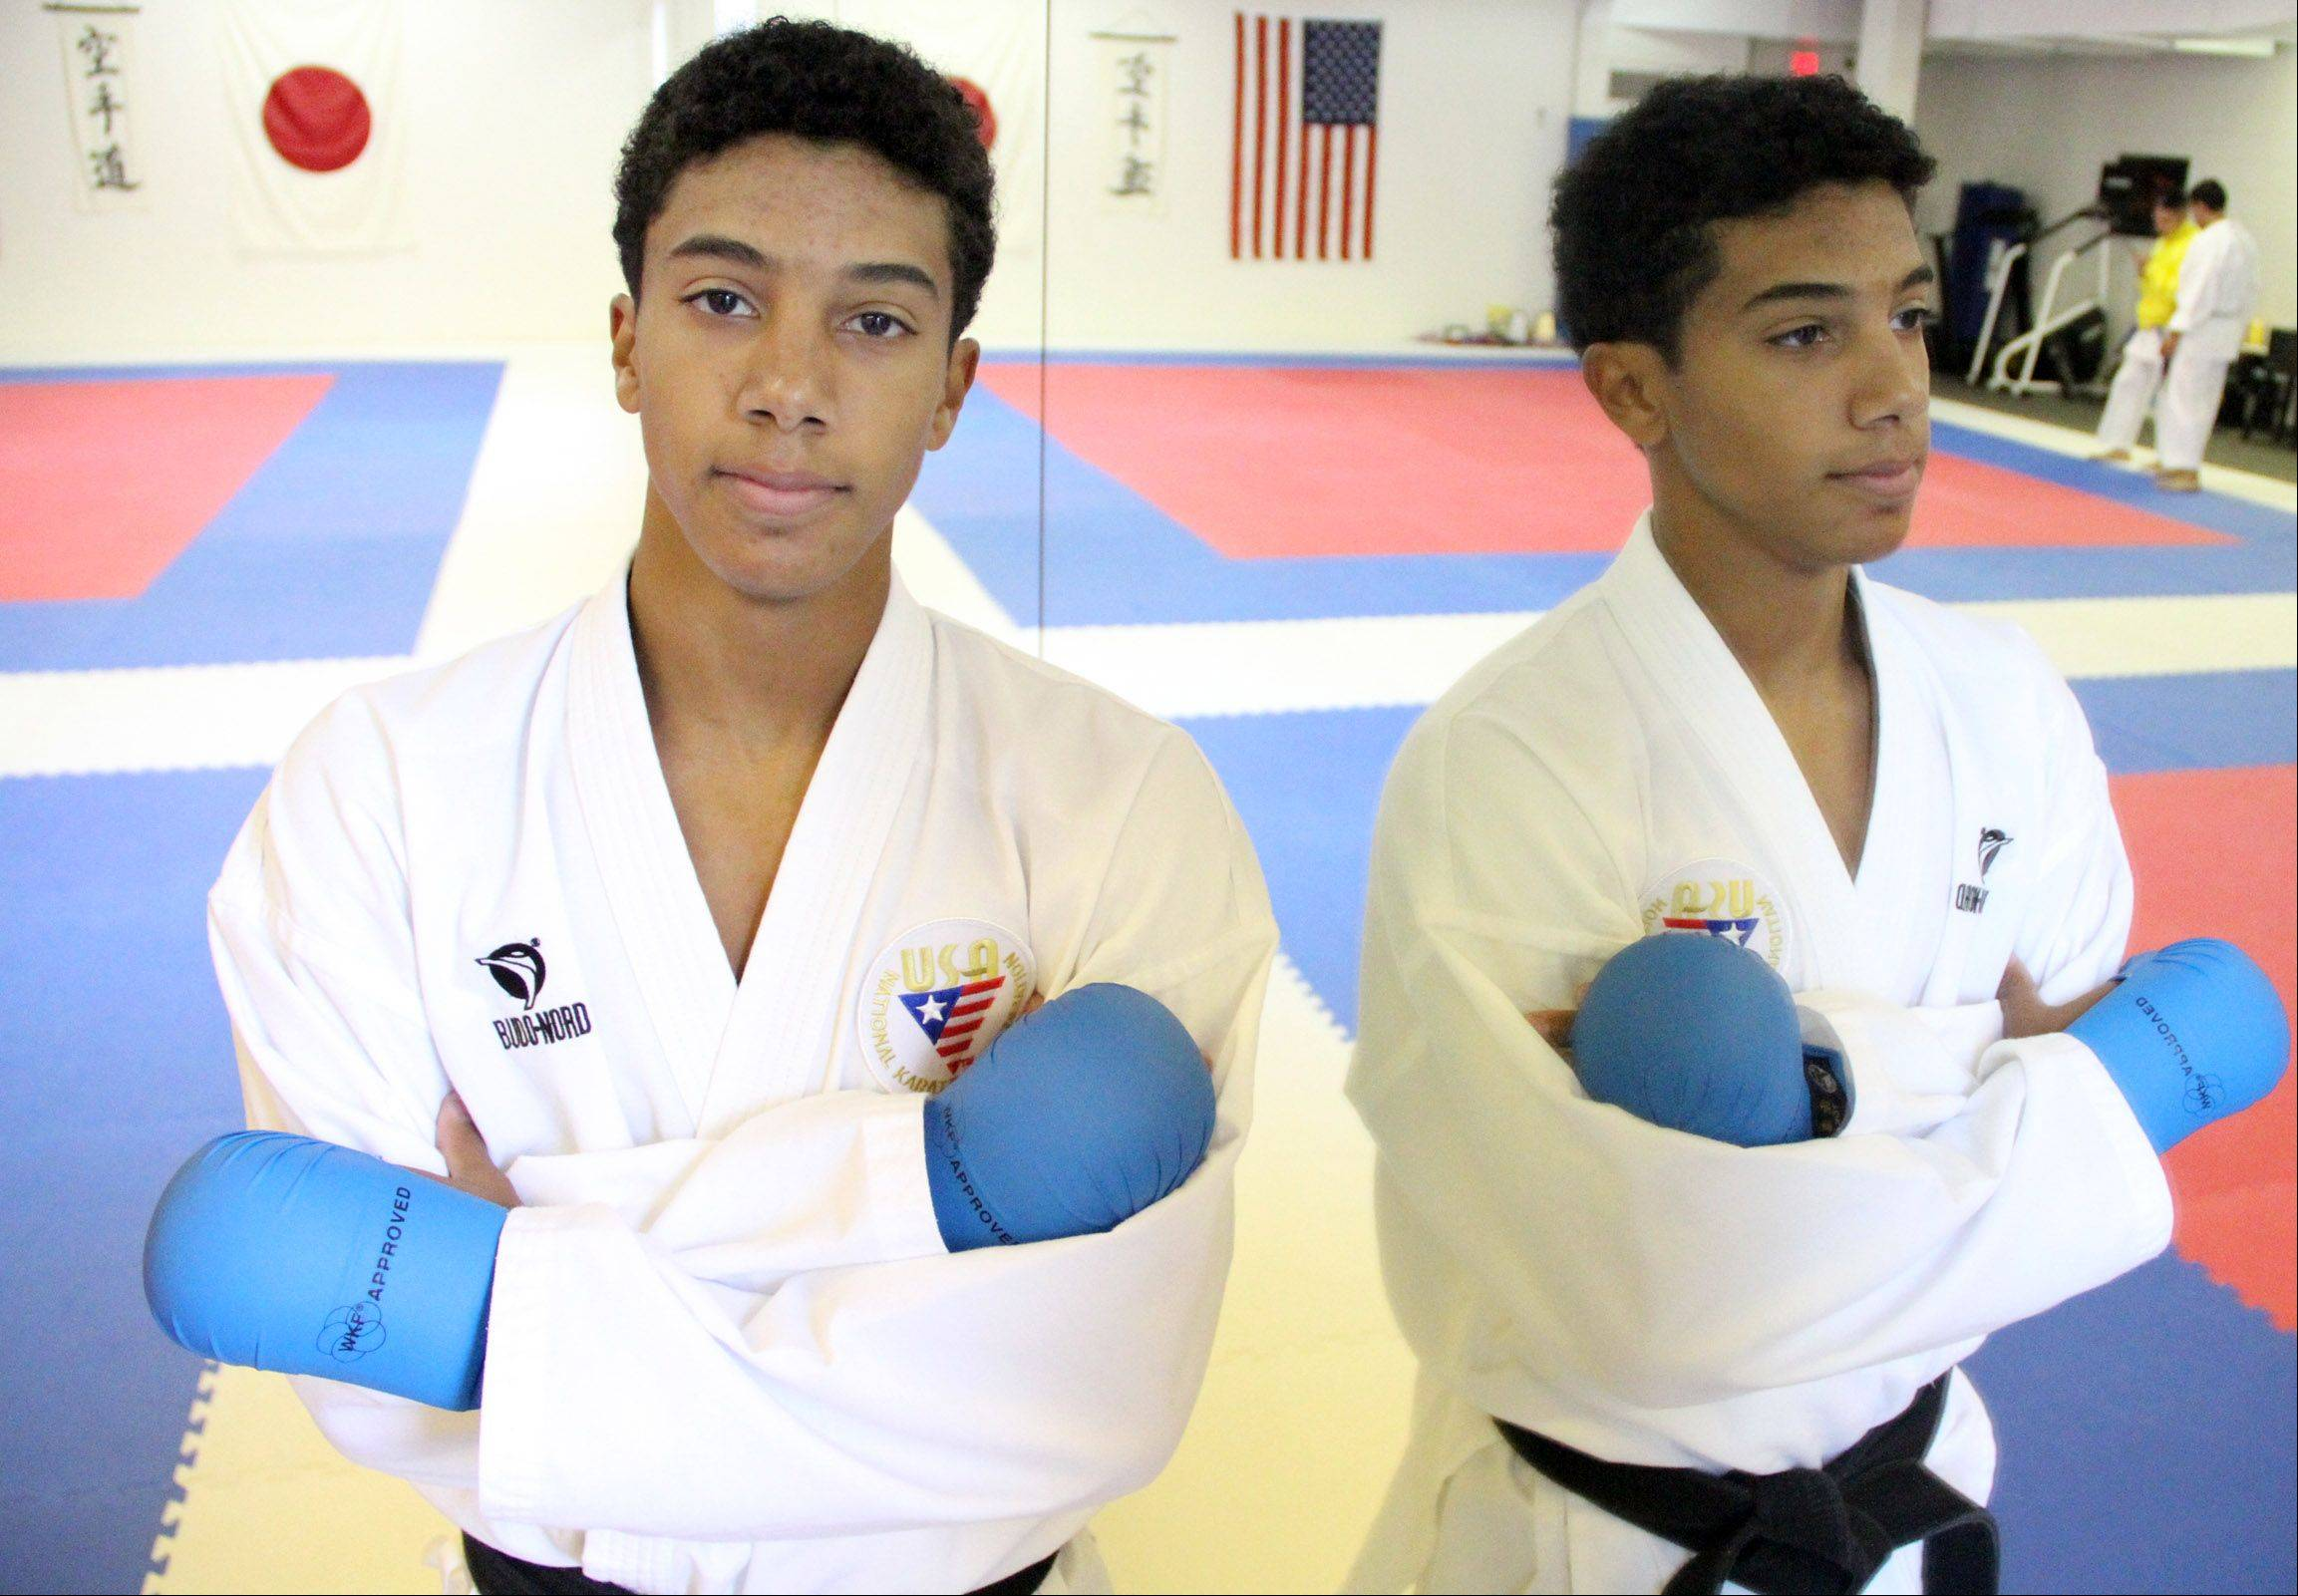 Brandon Malone trains at the Illinois Shotokan Karate Clubs dojo in Palatine. The five-time national team member hopes to represent the United States in the 2020 Olympics.